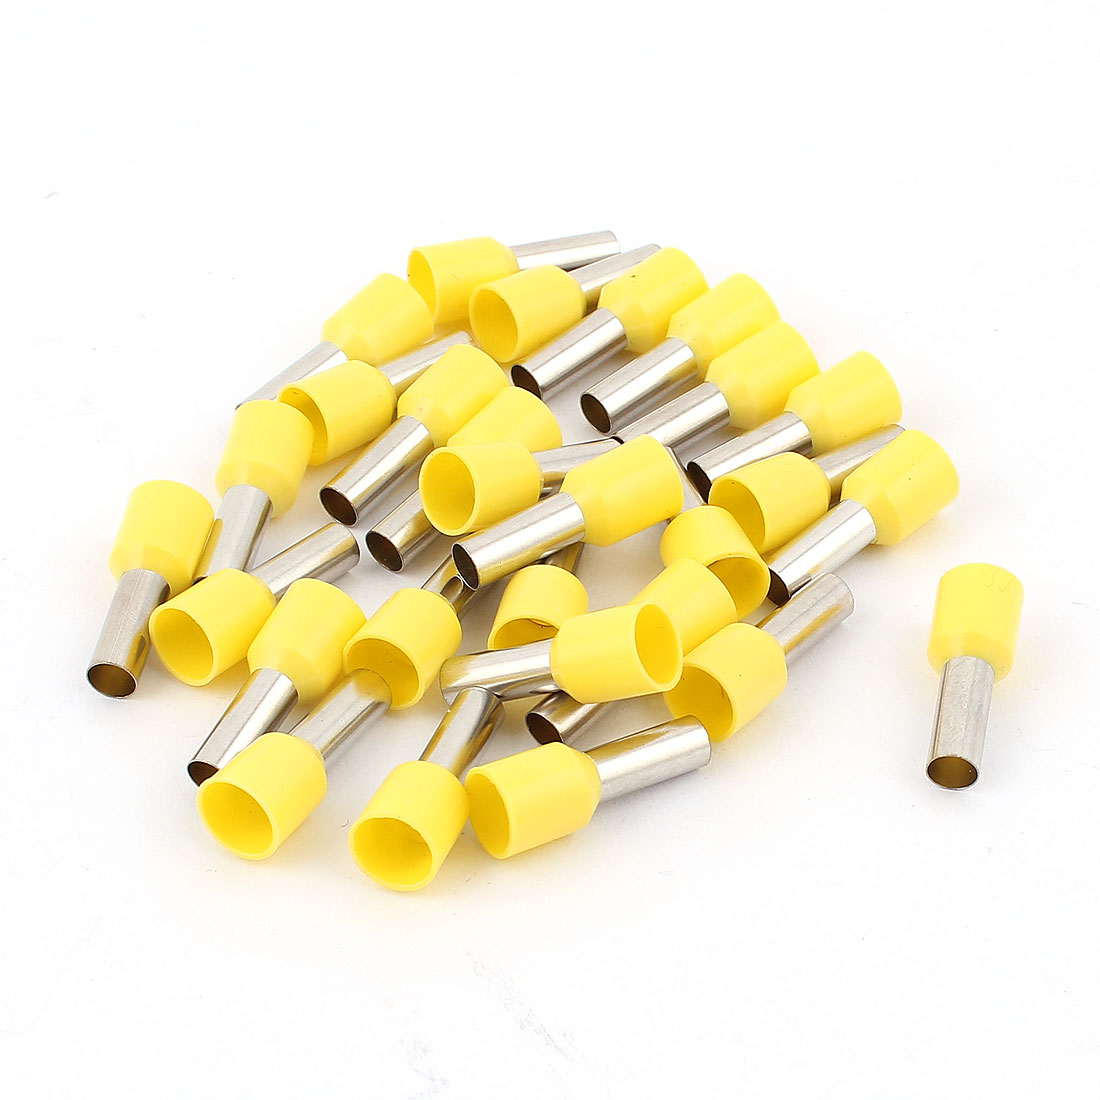 28pcs Yellow Pre Insulation Ferrule Wire Wiring Connector Terminals for 10-12AWG Cable